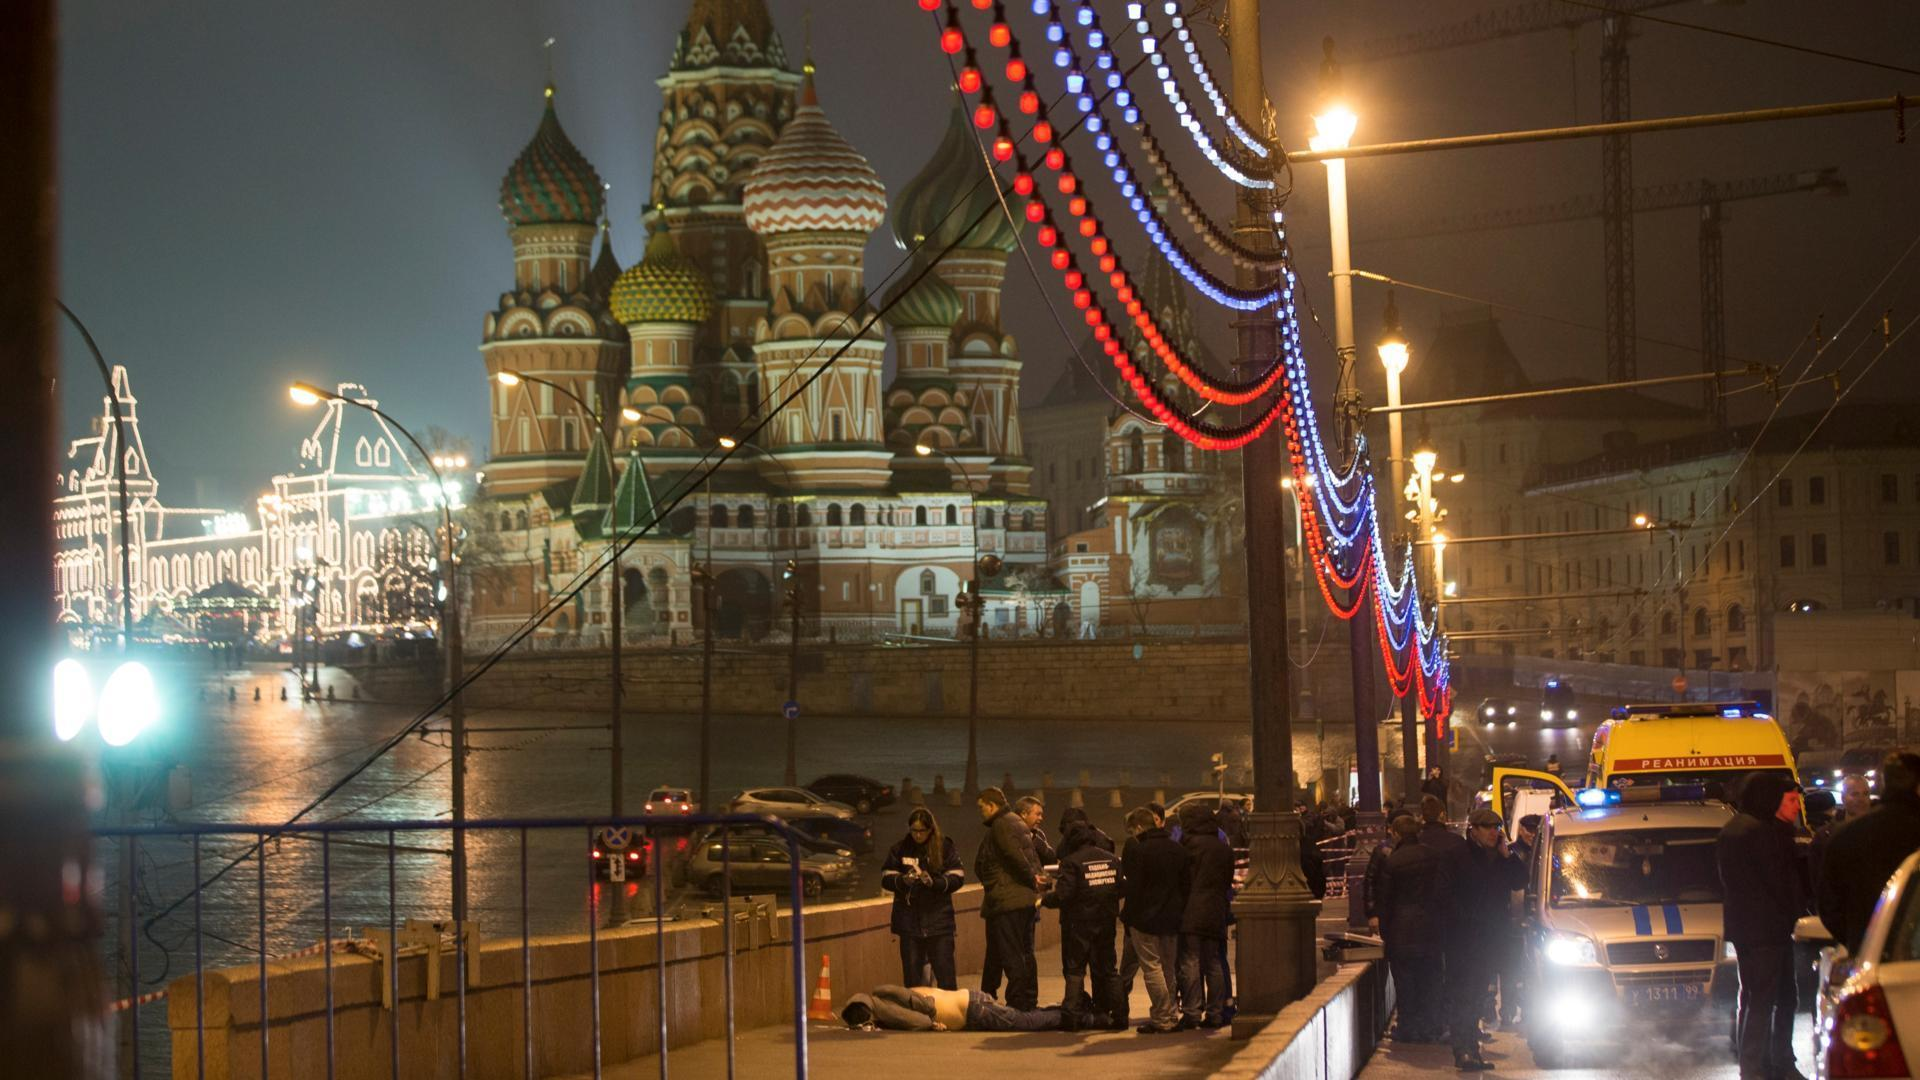 Russian investigators: Nemtsov killing may be provocation